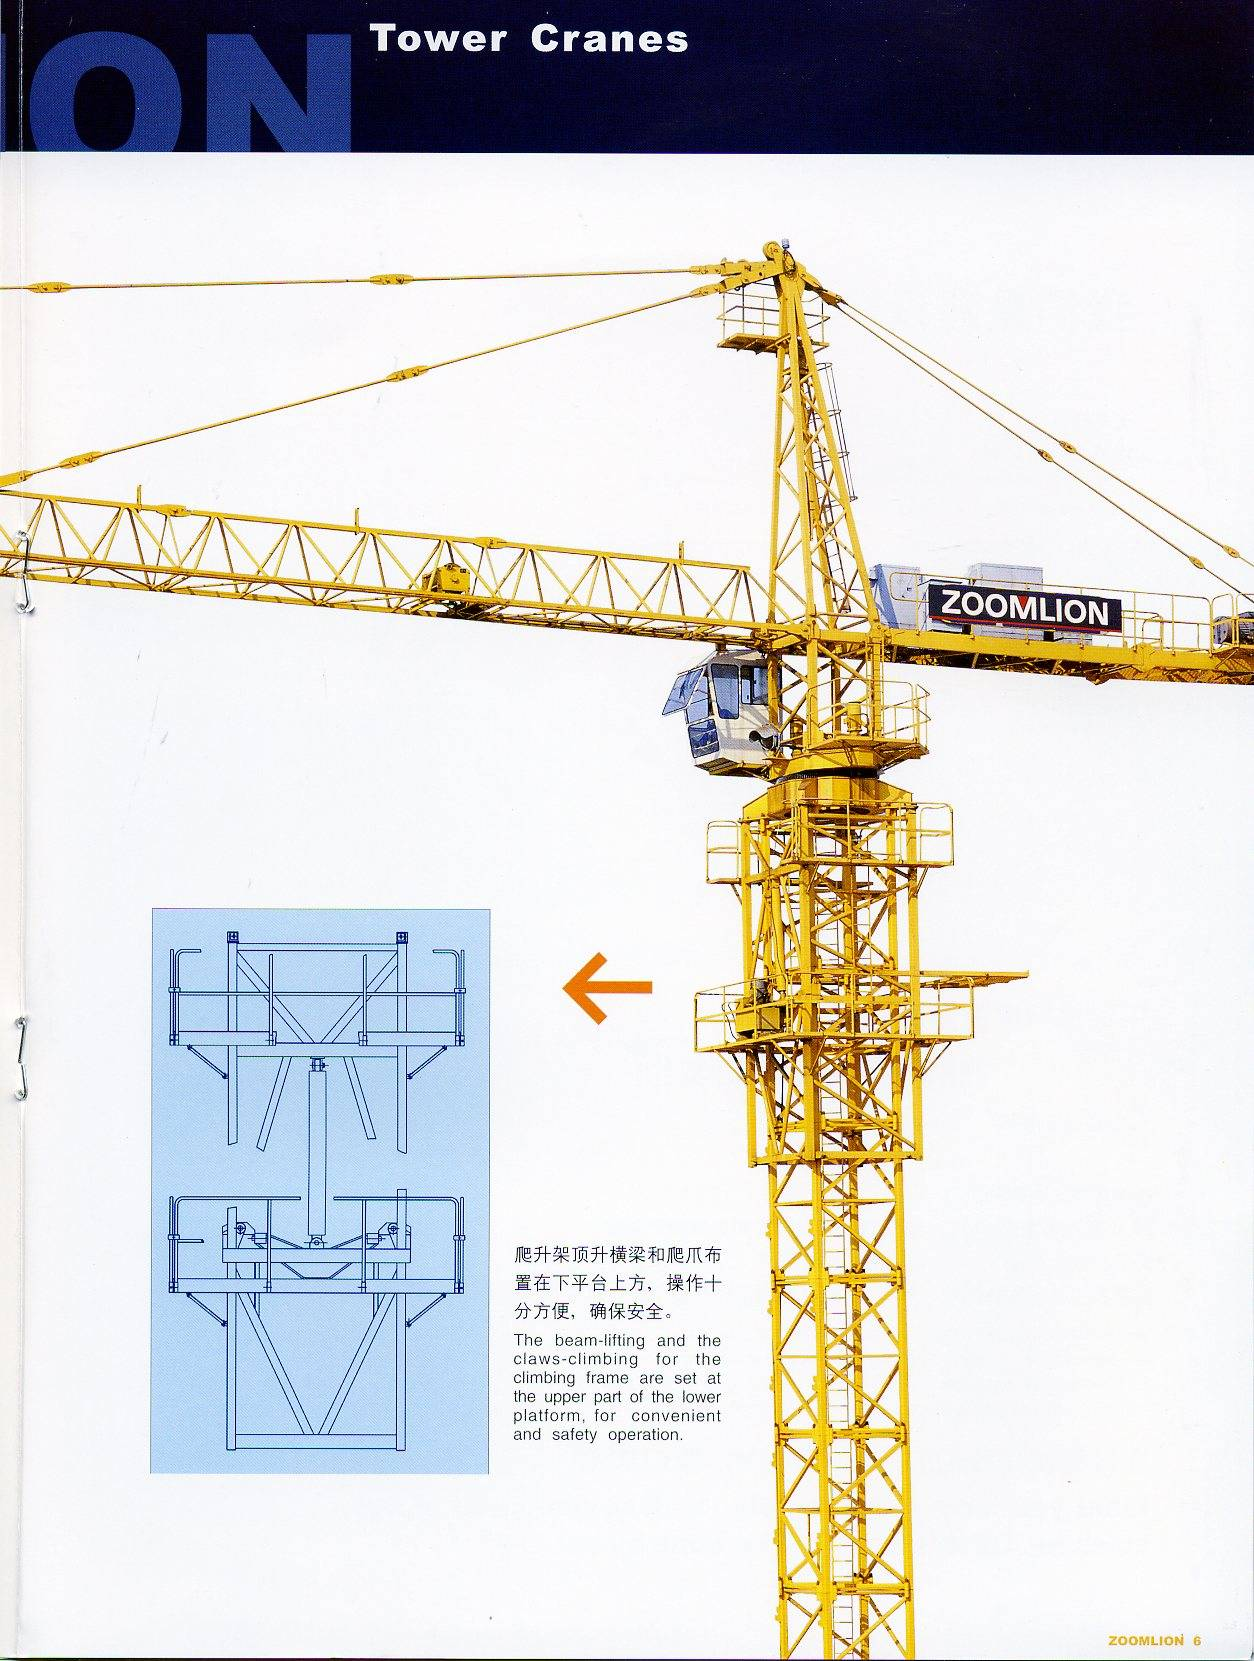 Zoomlion Tower Crane China : Zoomlion tower crane tc a manufacturer supplier